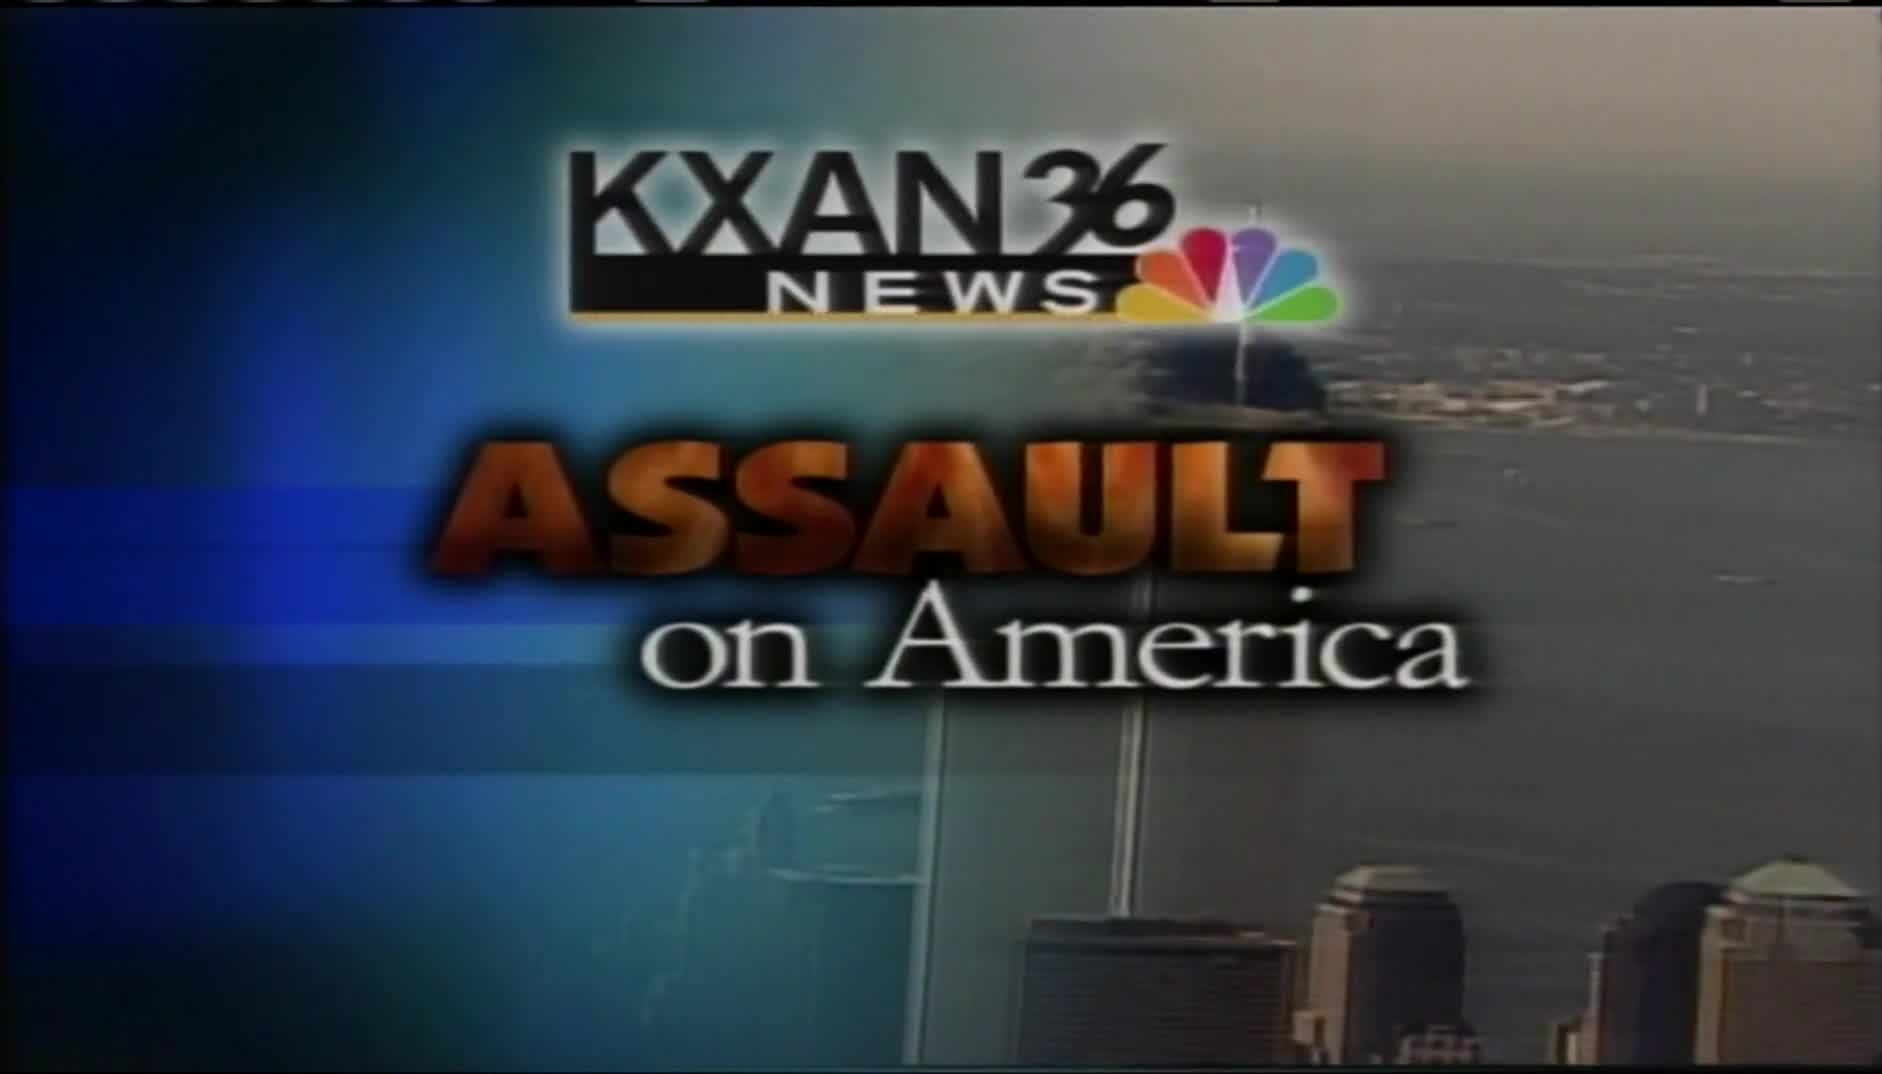 KXAN News carried out its first broadcast after the Sept. 11, 2001 terrorist attacks at 5 p.m. that day. (KXAN Photo)